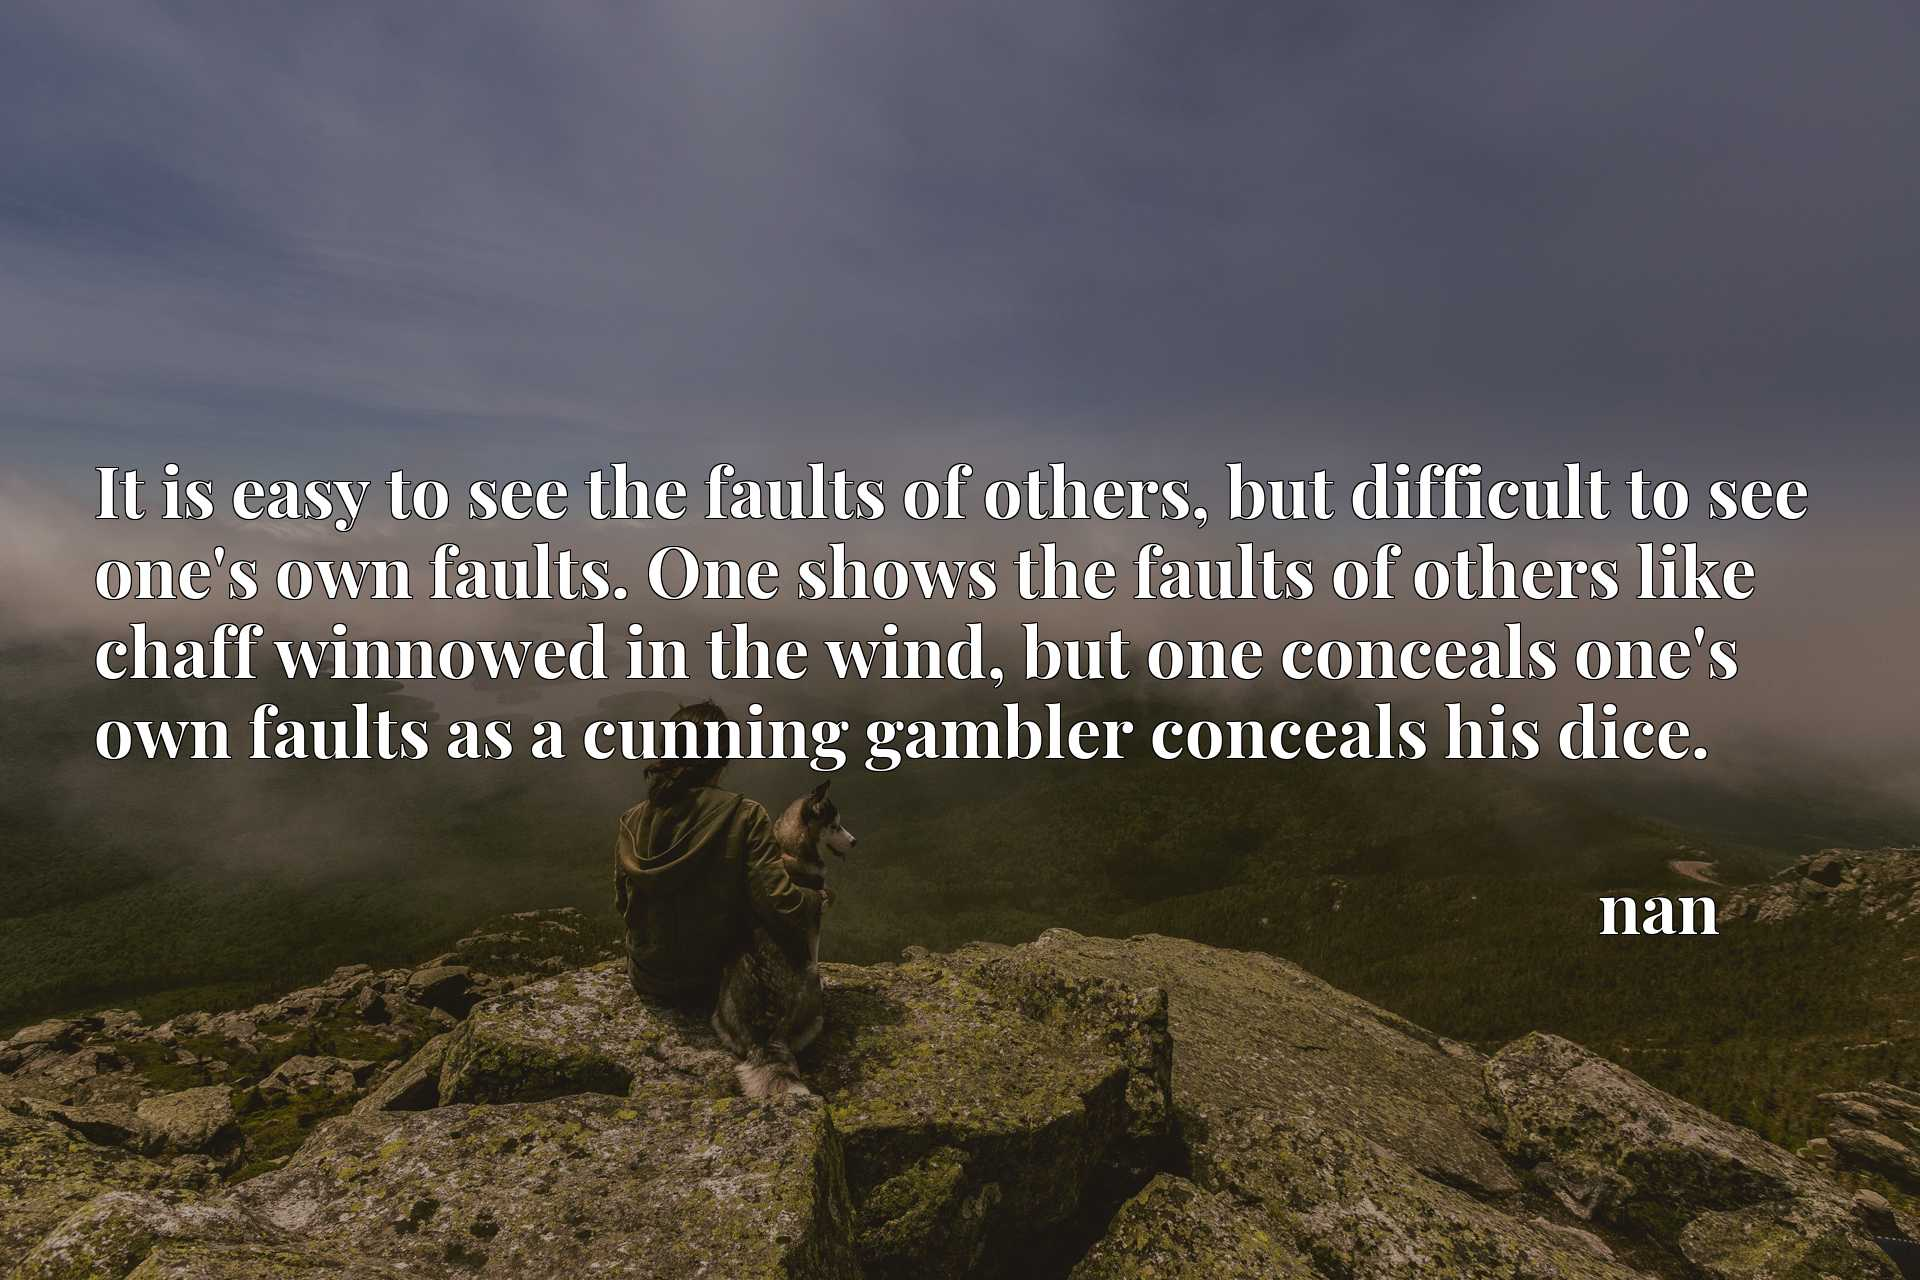 It is easy to see the faults of others, but difficult to see one's own faults. One shows the faults of others like chaff winnowed in the wind, but one conceals one's own faults as a cunning gambler conceals his dice.